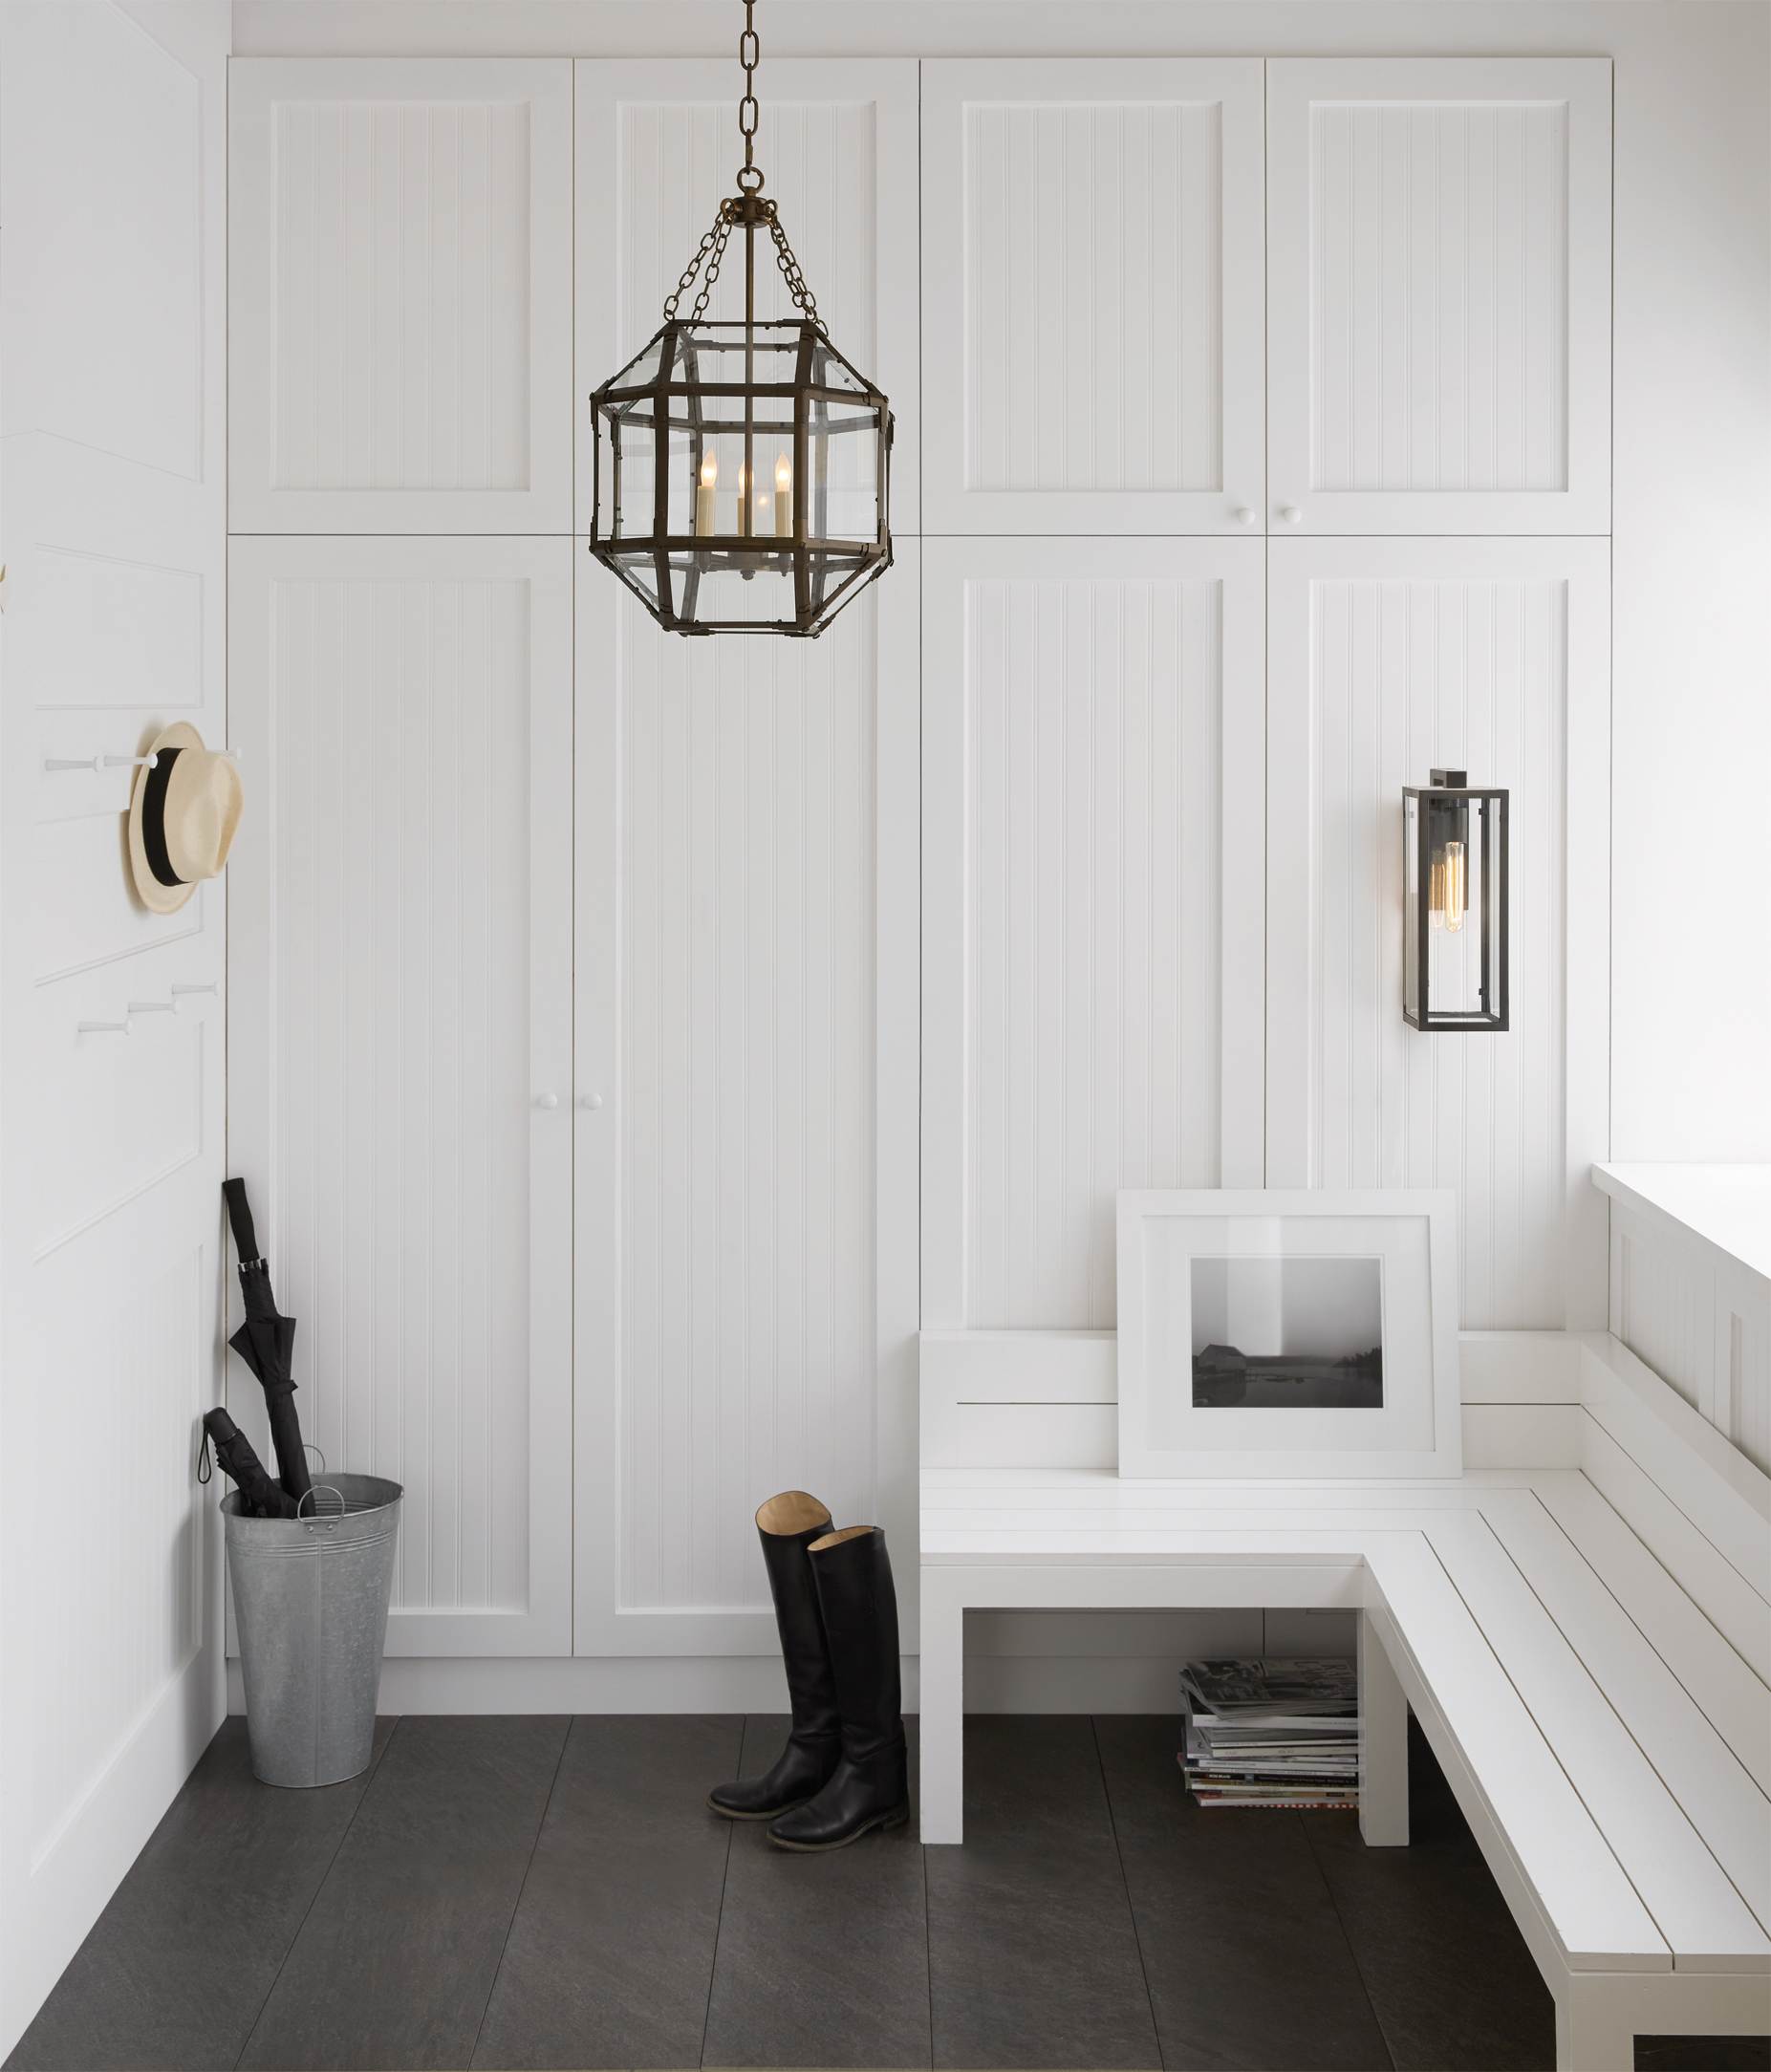 Mudroom Lighting Stores In Washington Dc